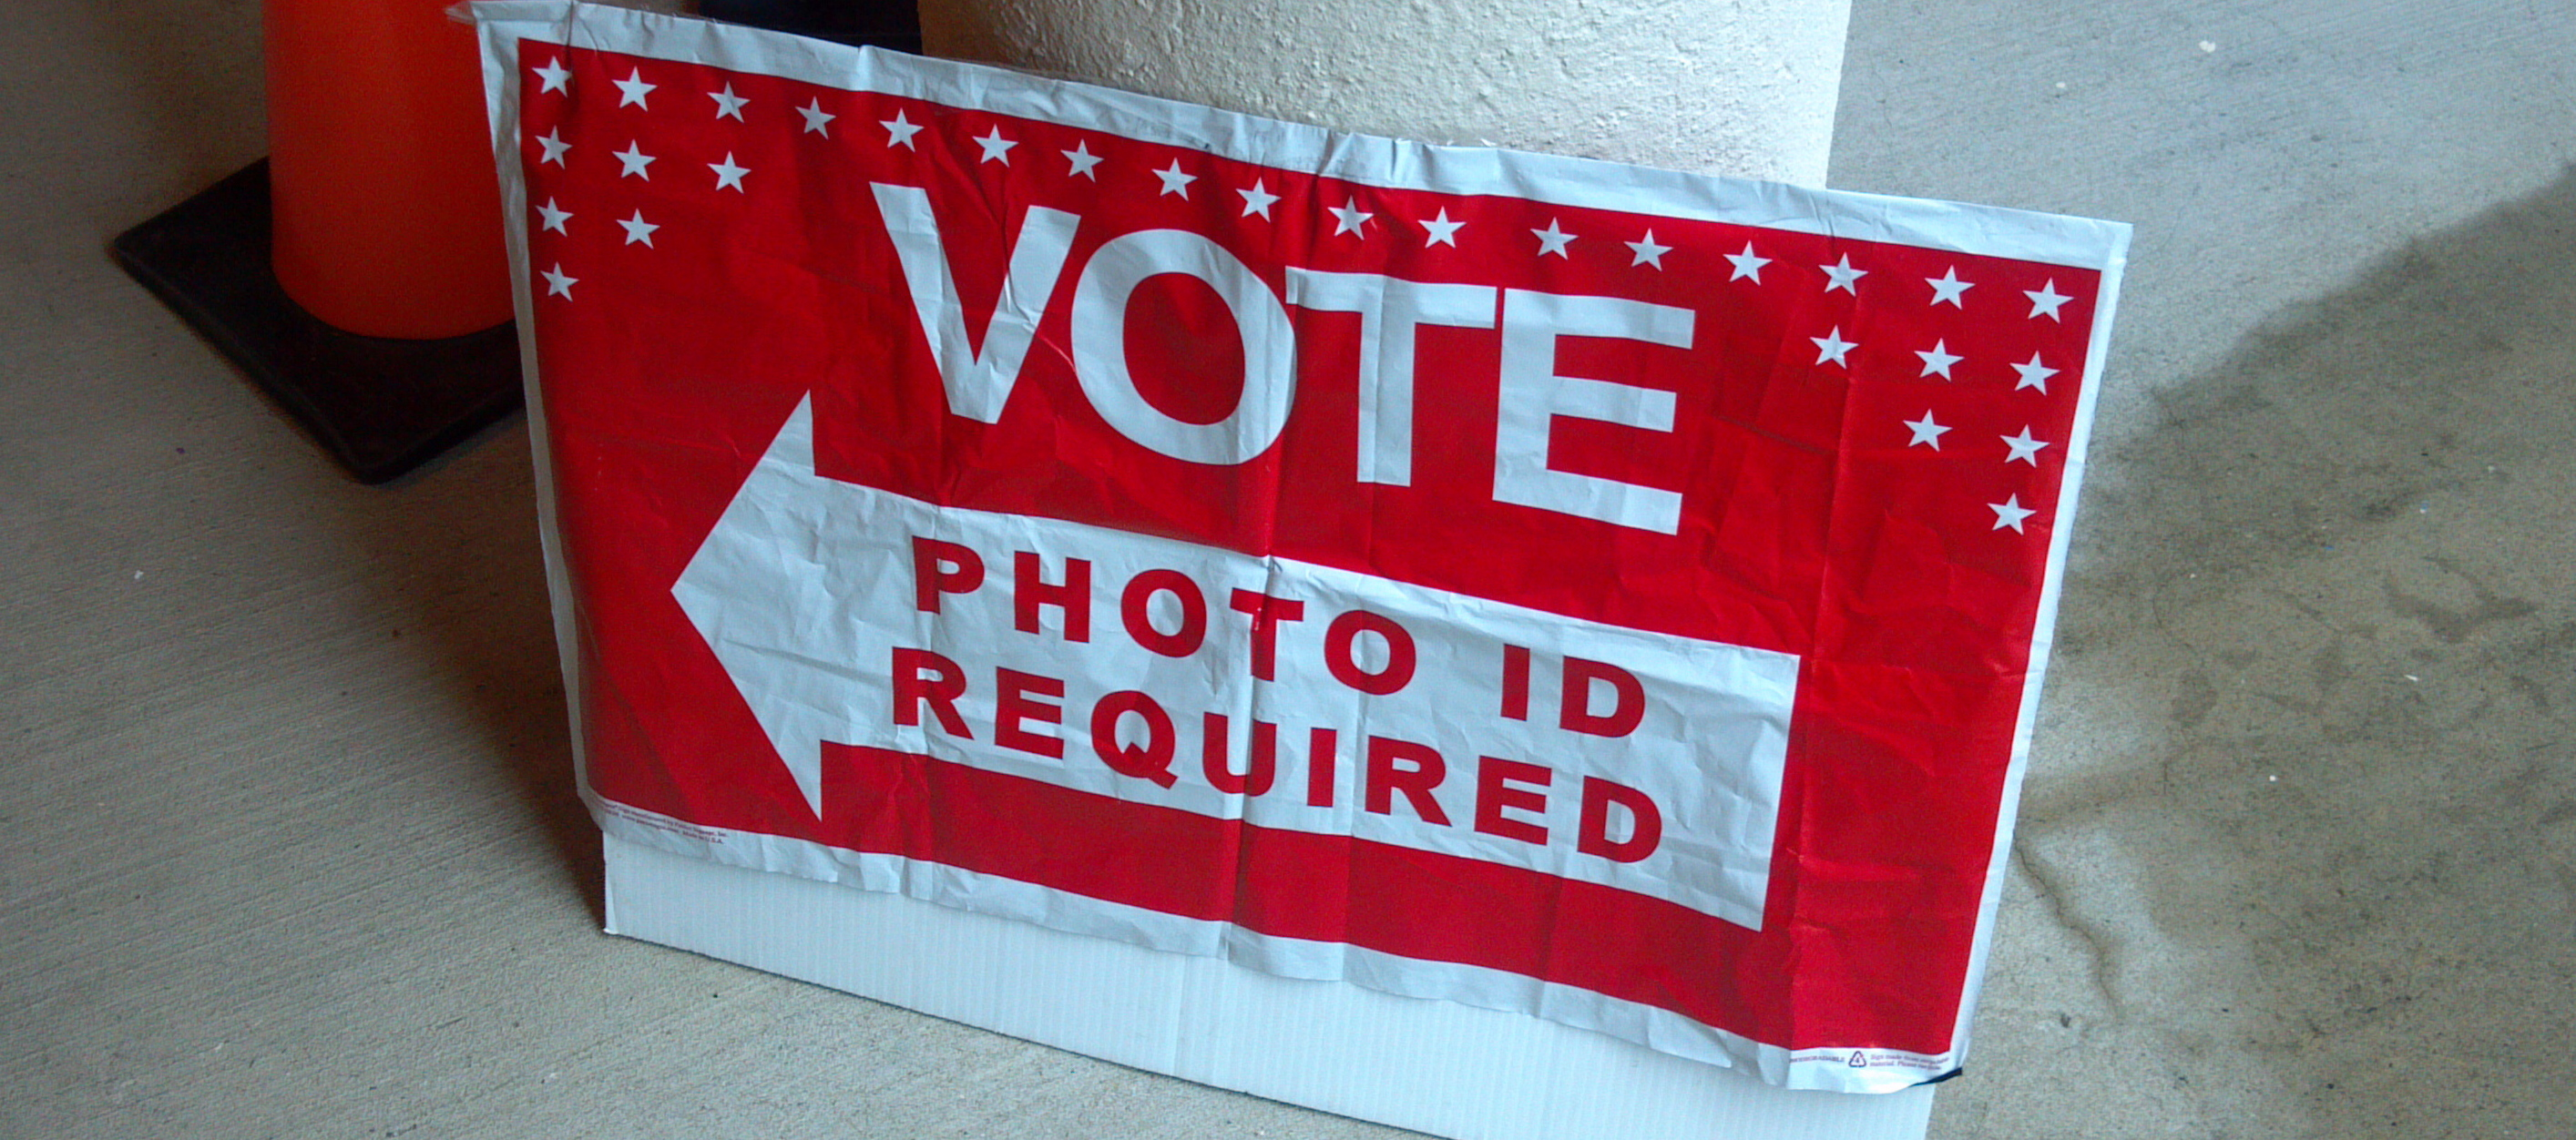 Voter ID Required Sign